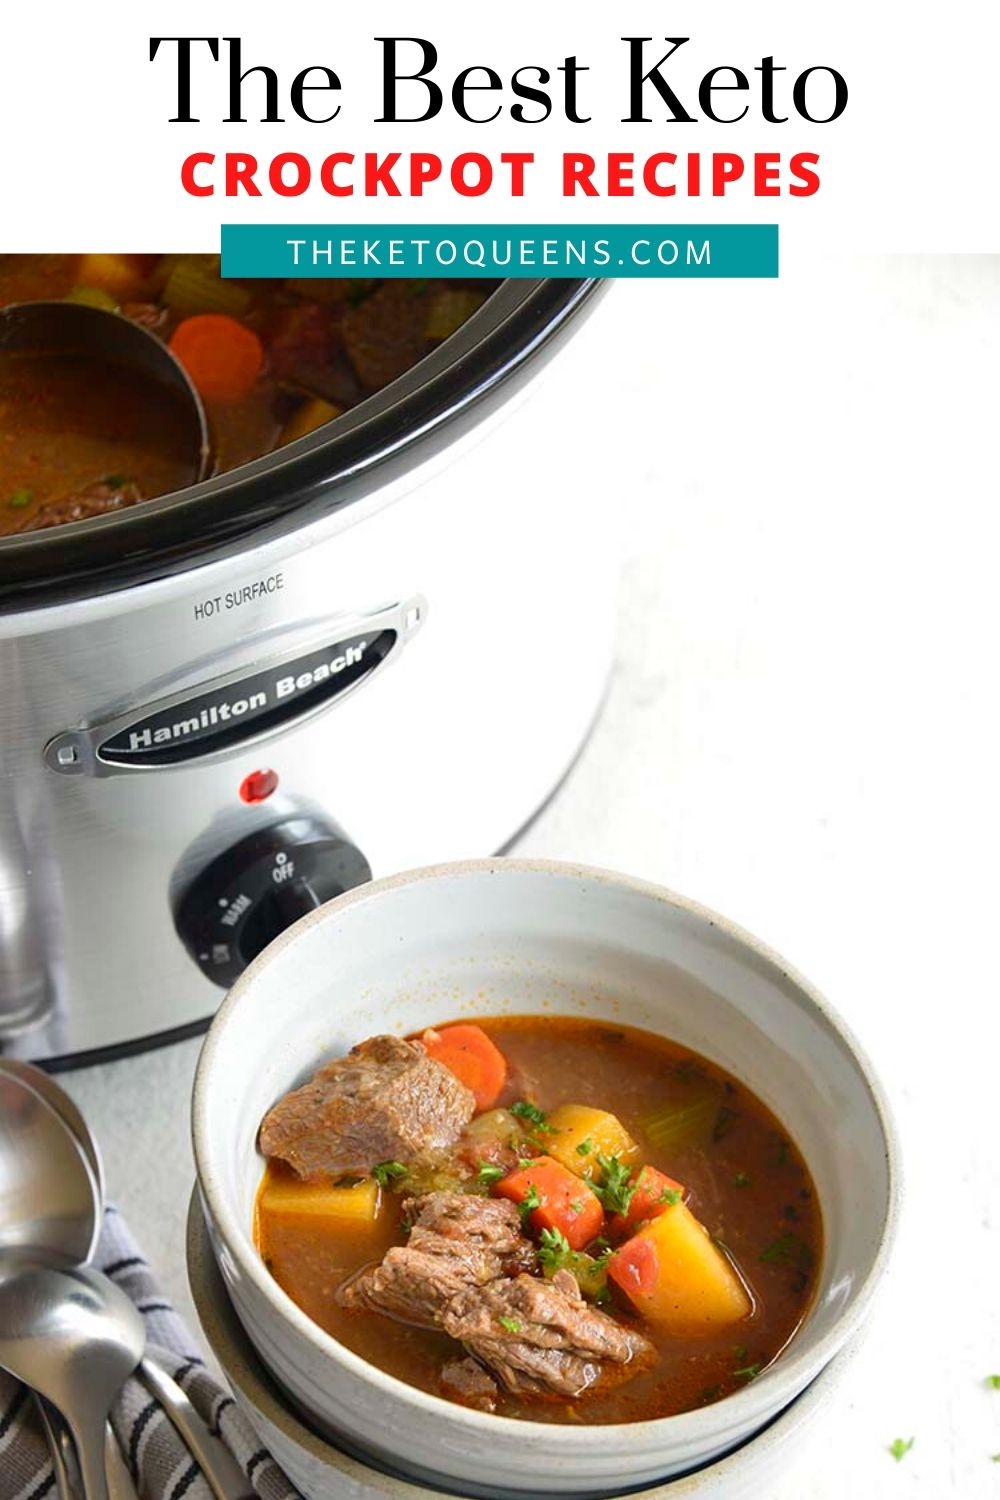 Keto Crockpot Recipes are a great way to save time and serve your family a delicious meal. Low carb slow cooker recipes are also a great way to meal prep for the week to save time and money!